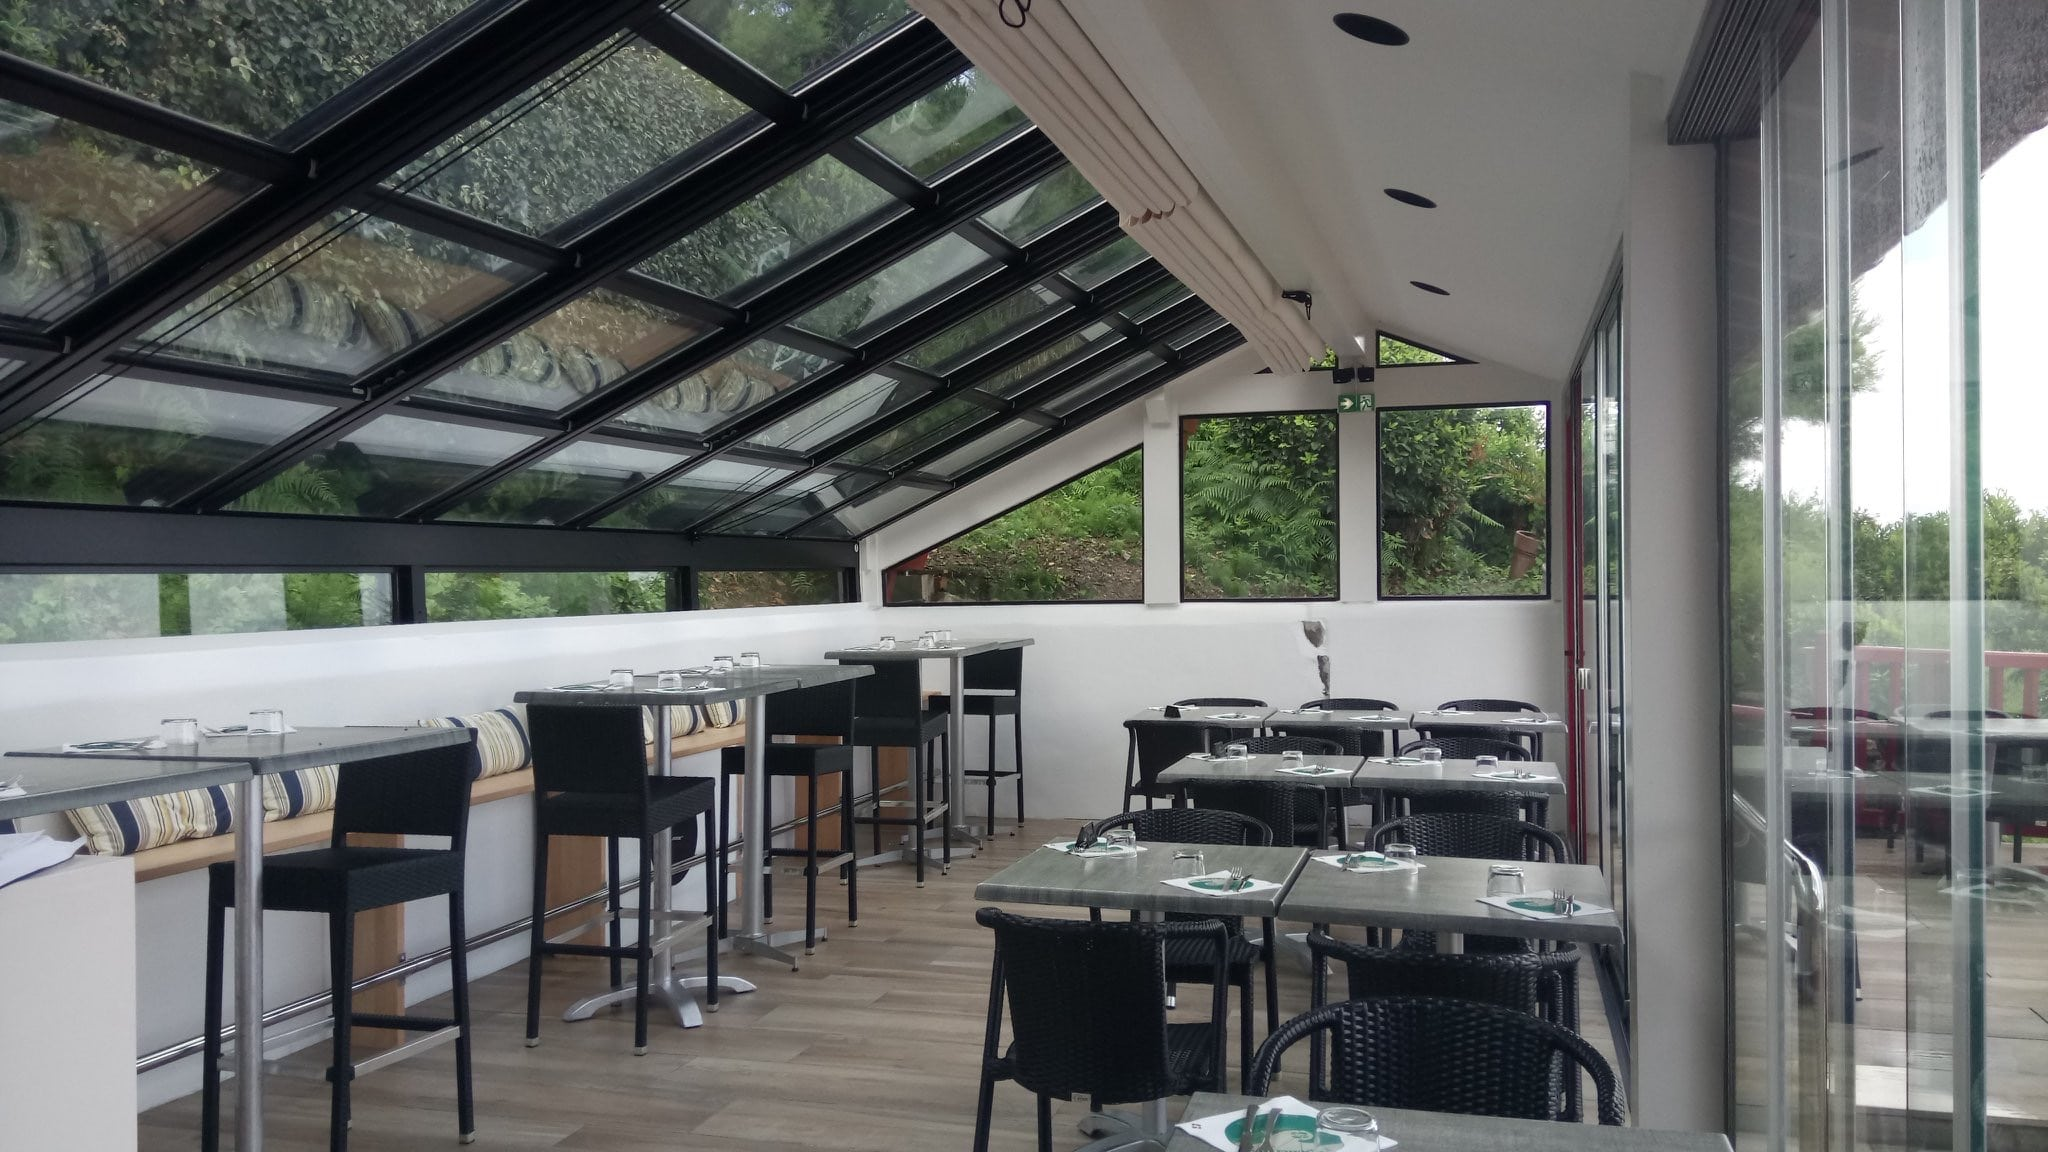 Retractable Roof Systems and Sunroom systems